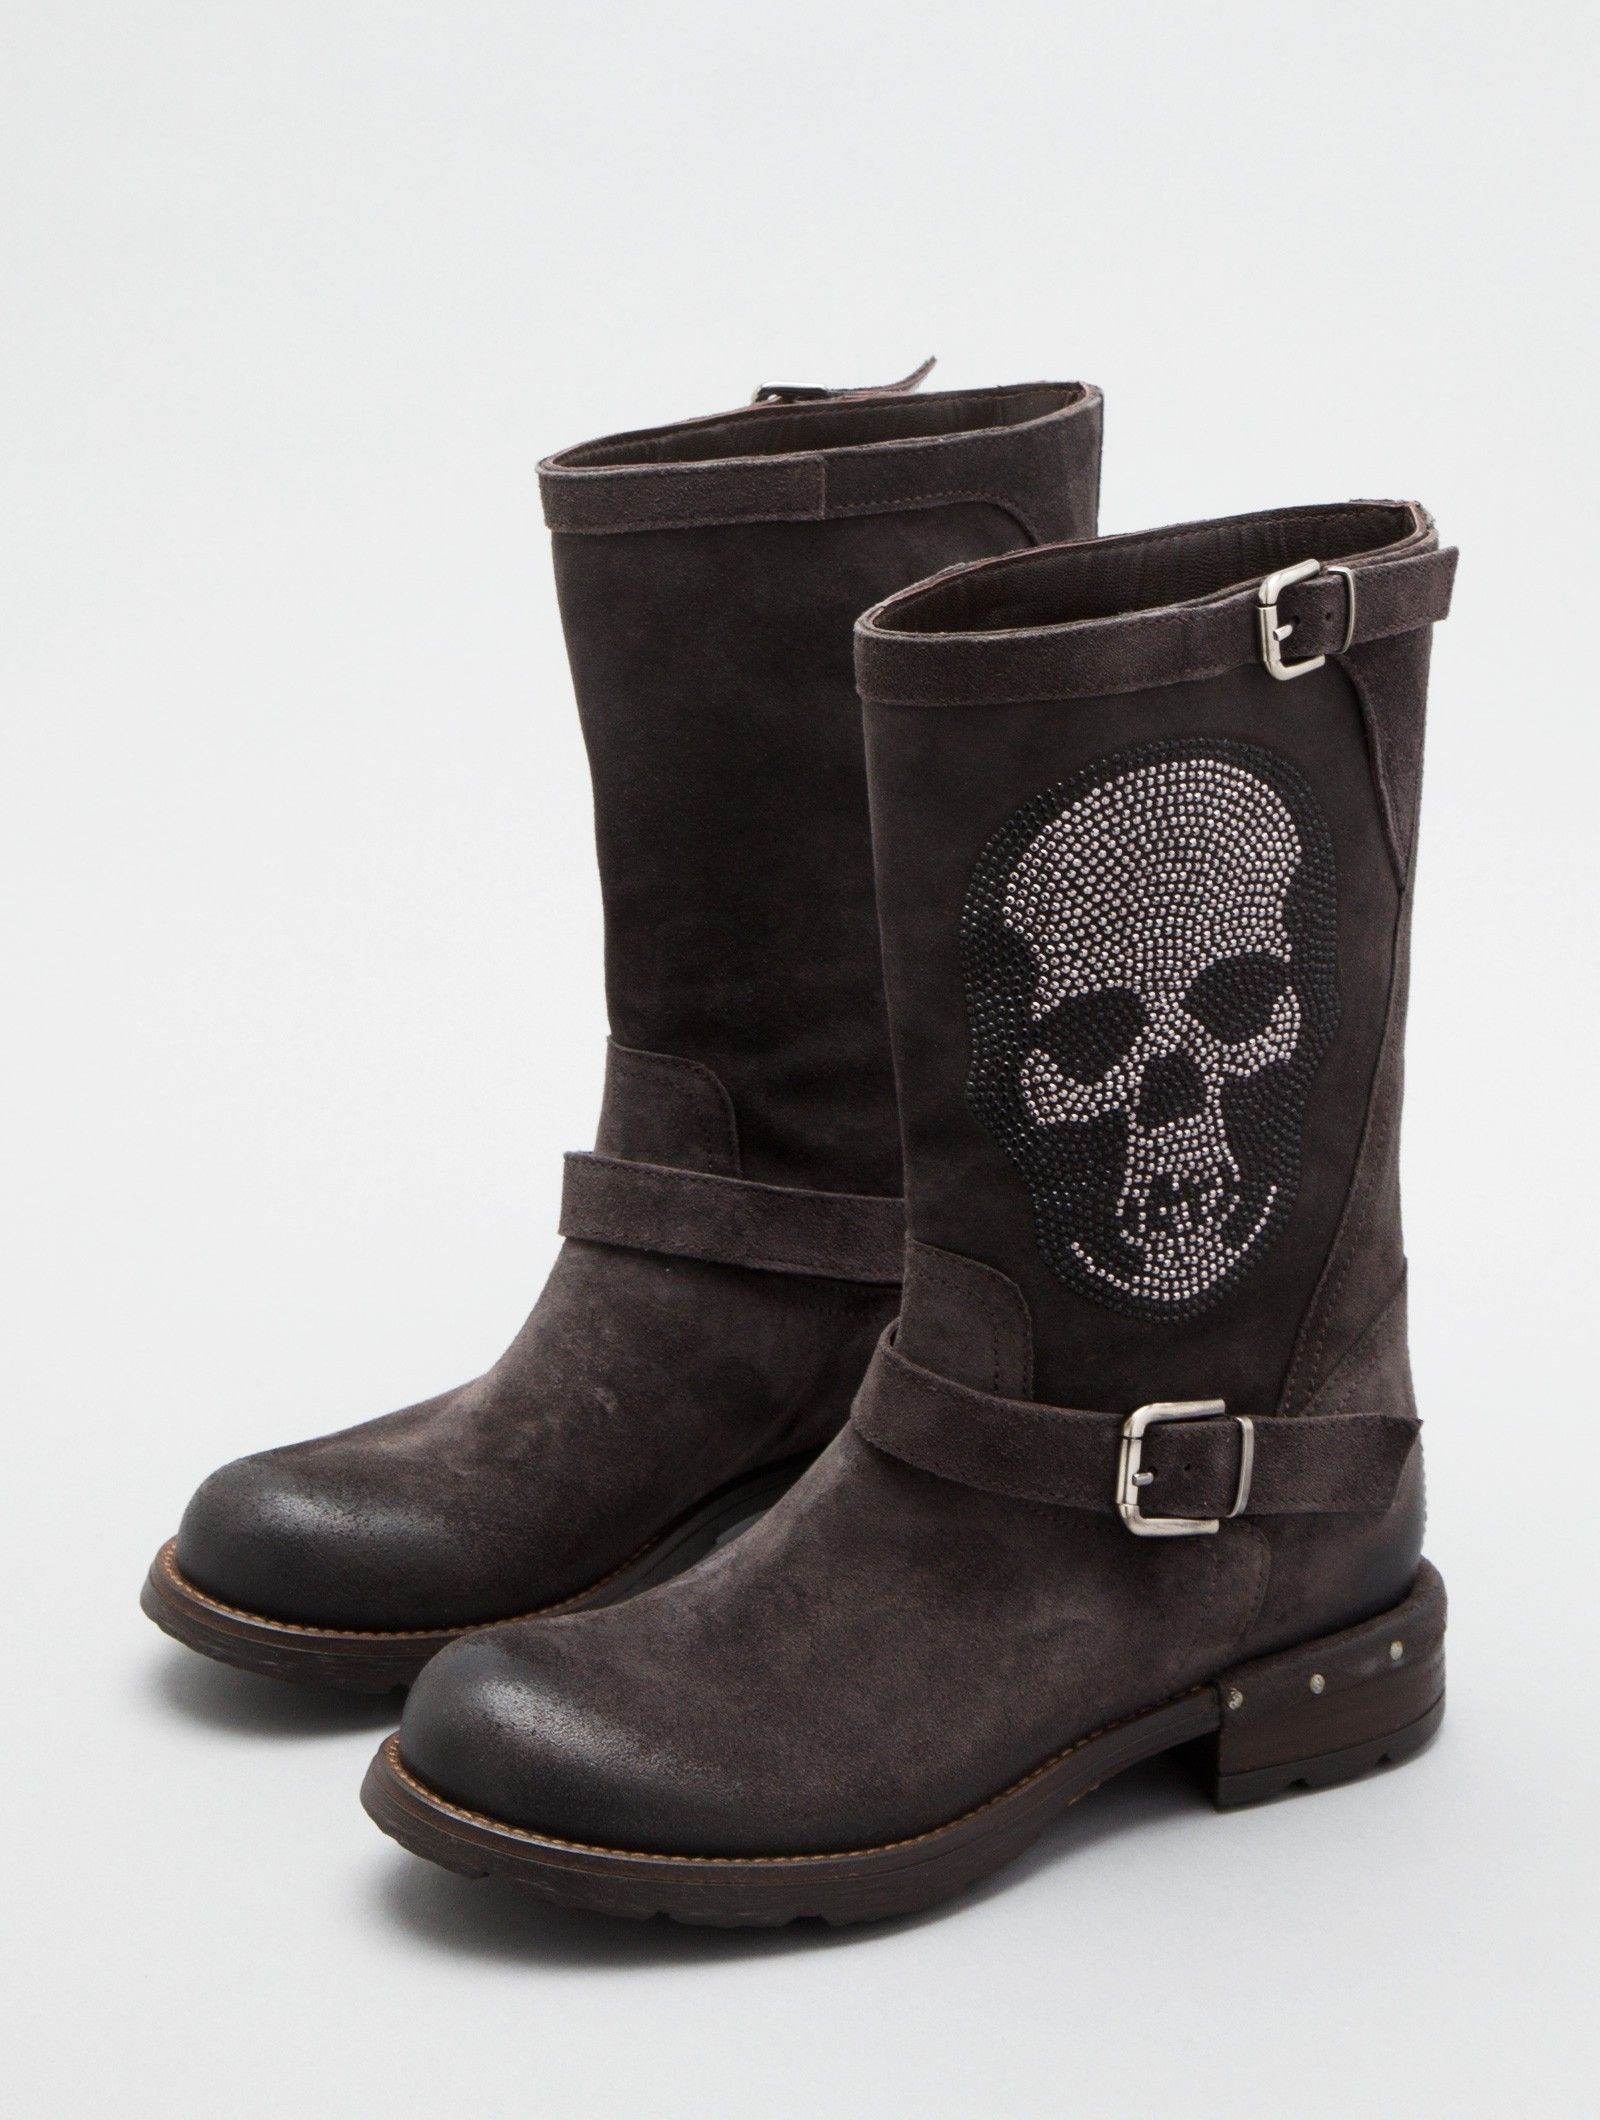 54ec605bb8a Skull Boots | Shoes Shoes Shoes! | Skull shoes, Shoes, Boots